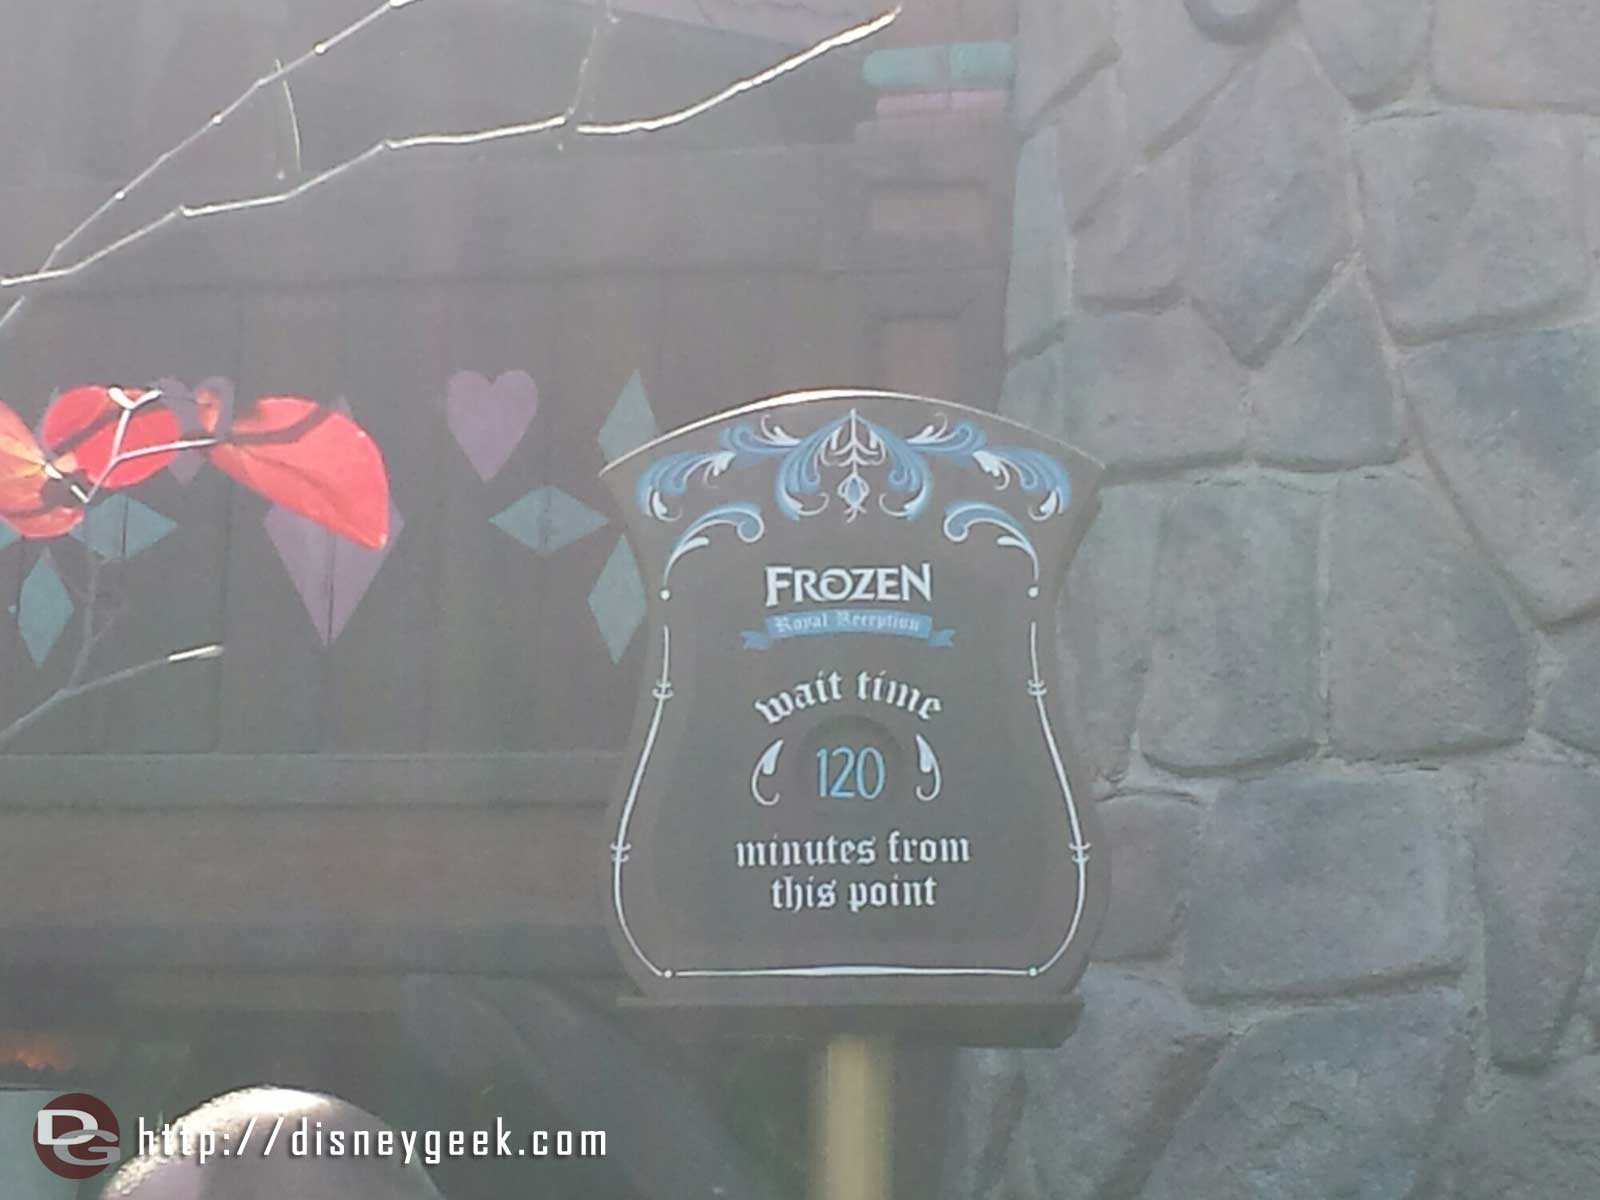 Only 120 minutes to meet Anna & Elsa.  Used to think that was long till I saw the waits at WDW